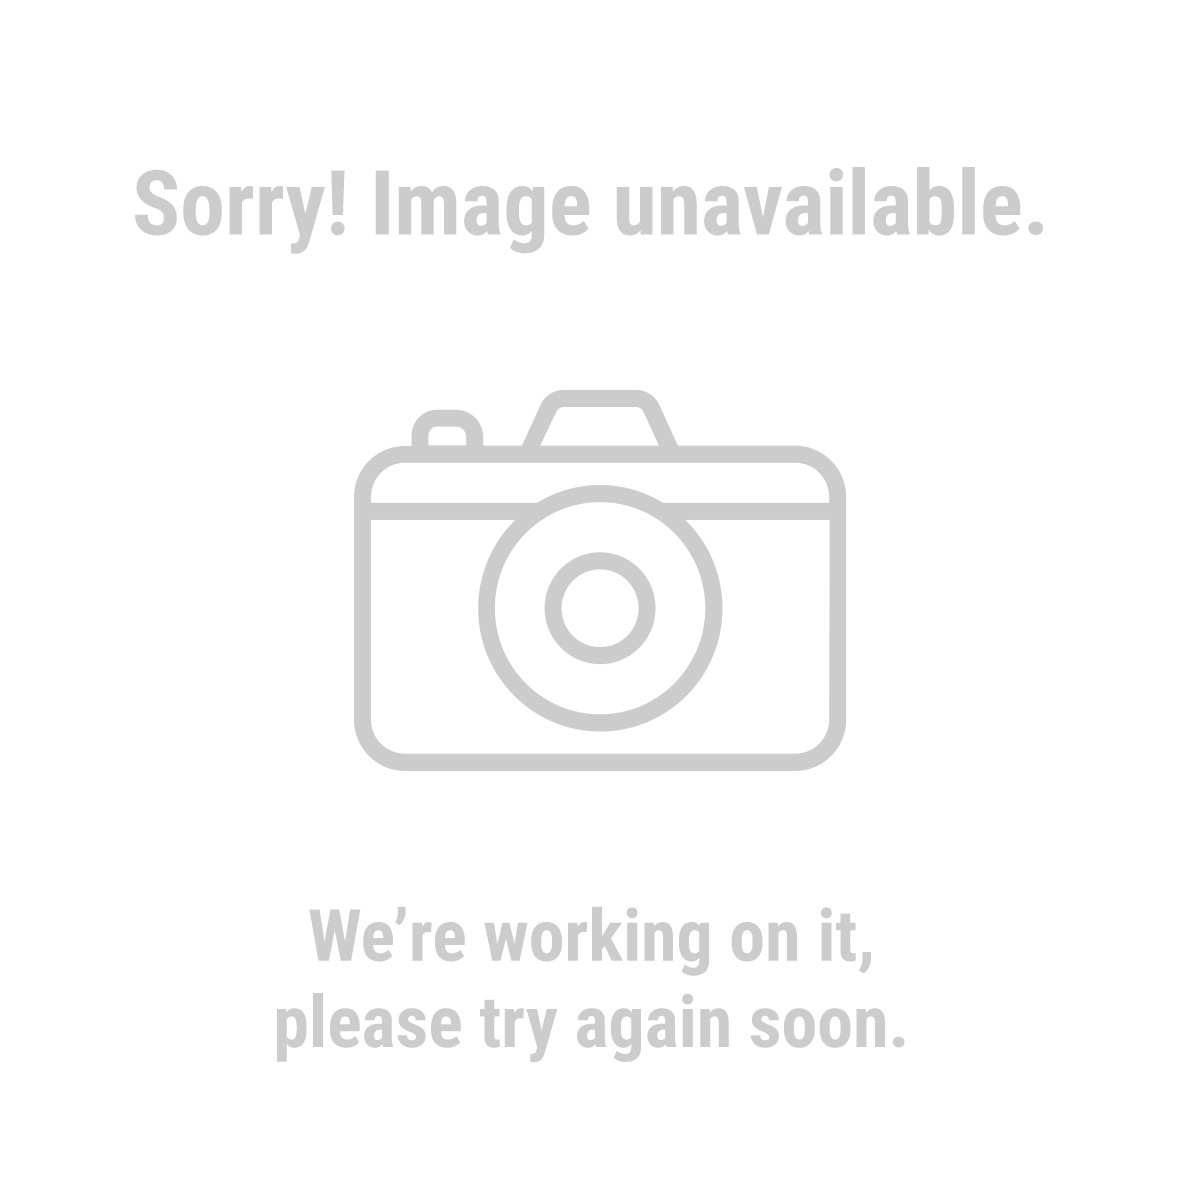 Admiral 62737 7-1/4 in. 140T Plywood Circular Saw Blade